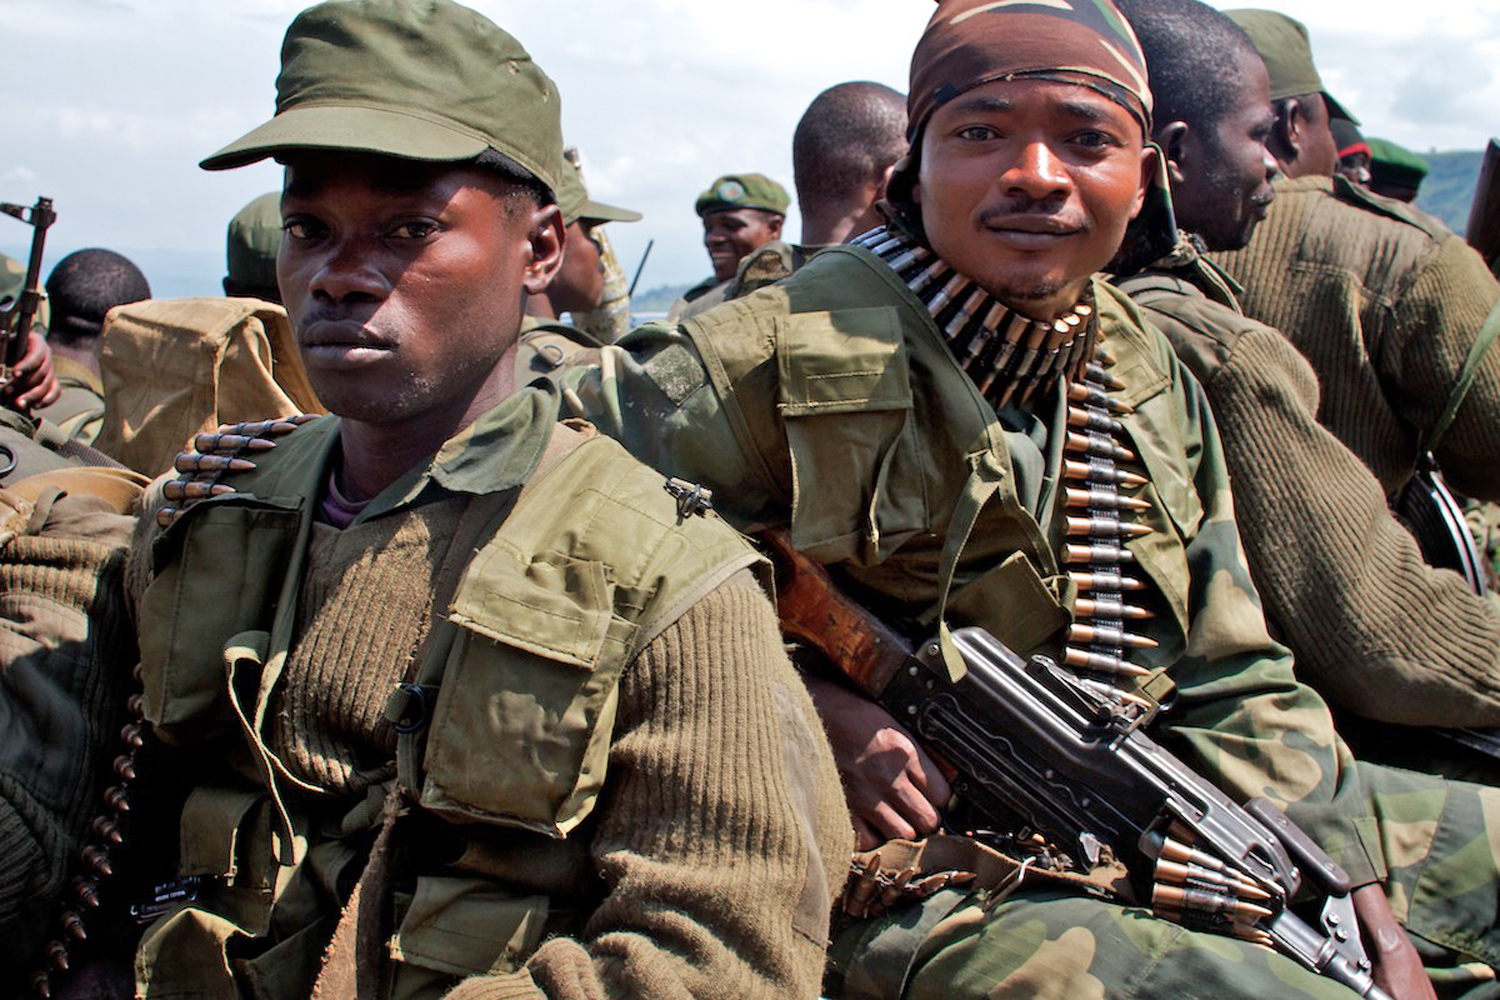 Government army (FARDC) troops in Minova, Democratic Republic of Congo, move to positions in the hills around the town